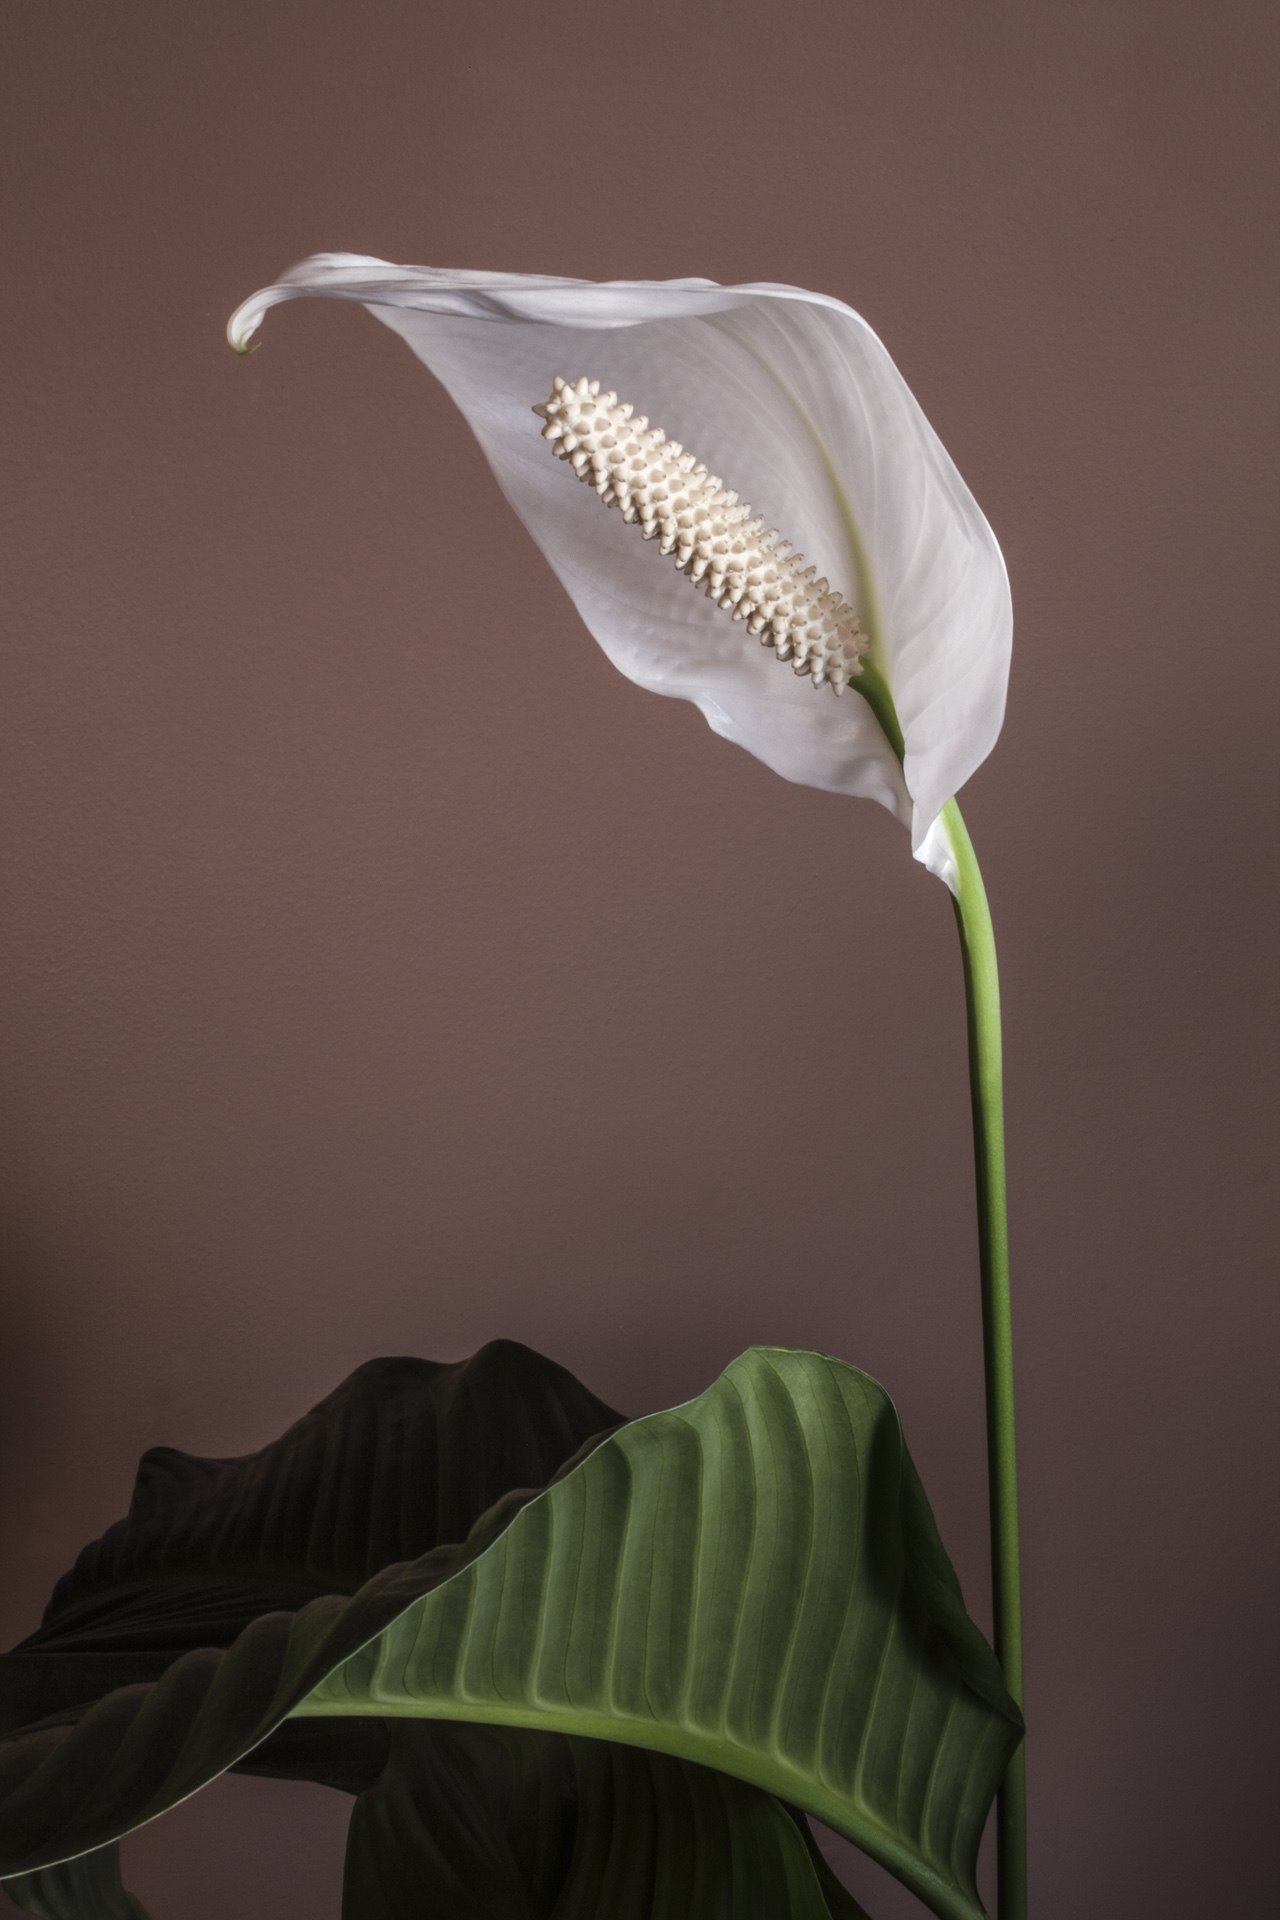 Peace Lilly - Color Print (Open) - Name Withheld Per Request